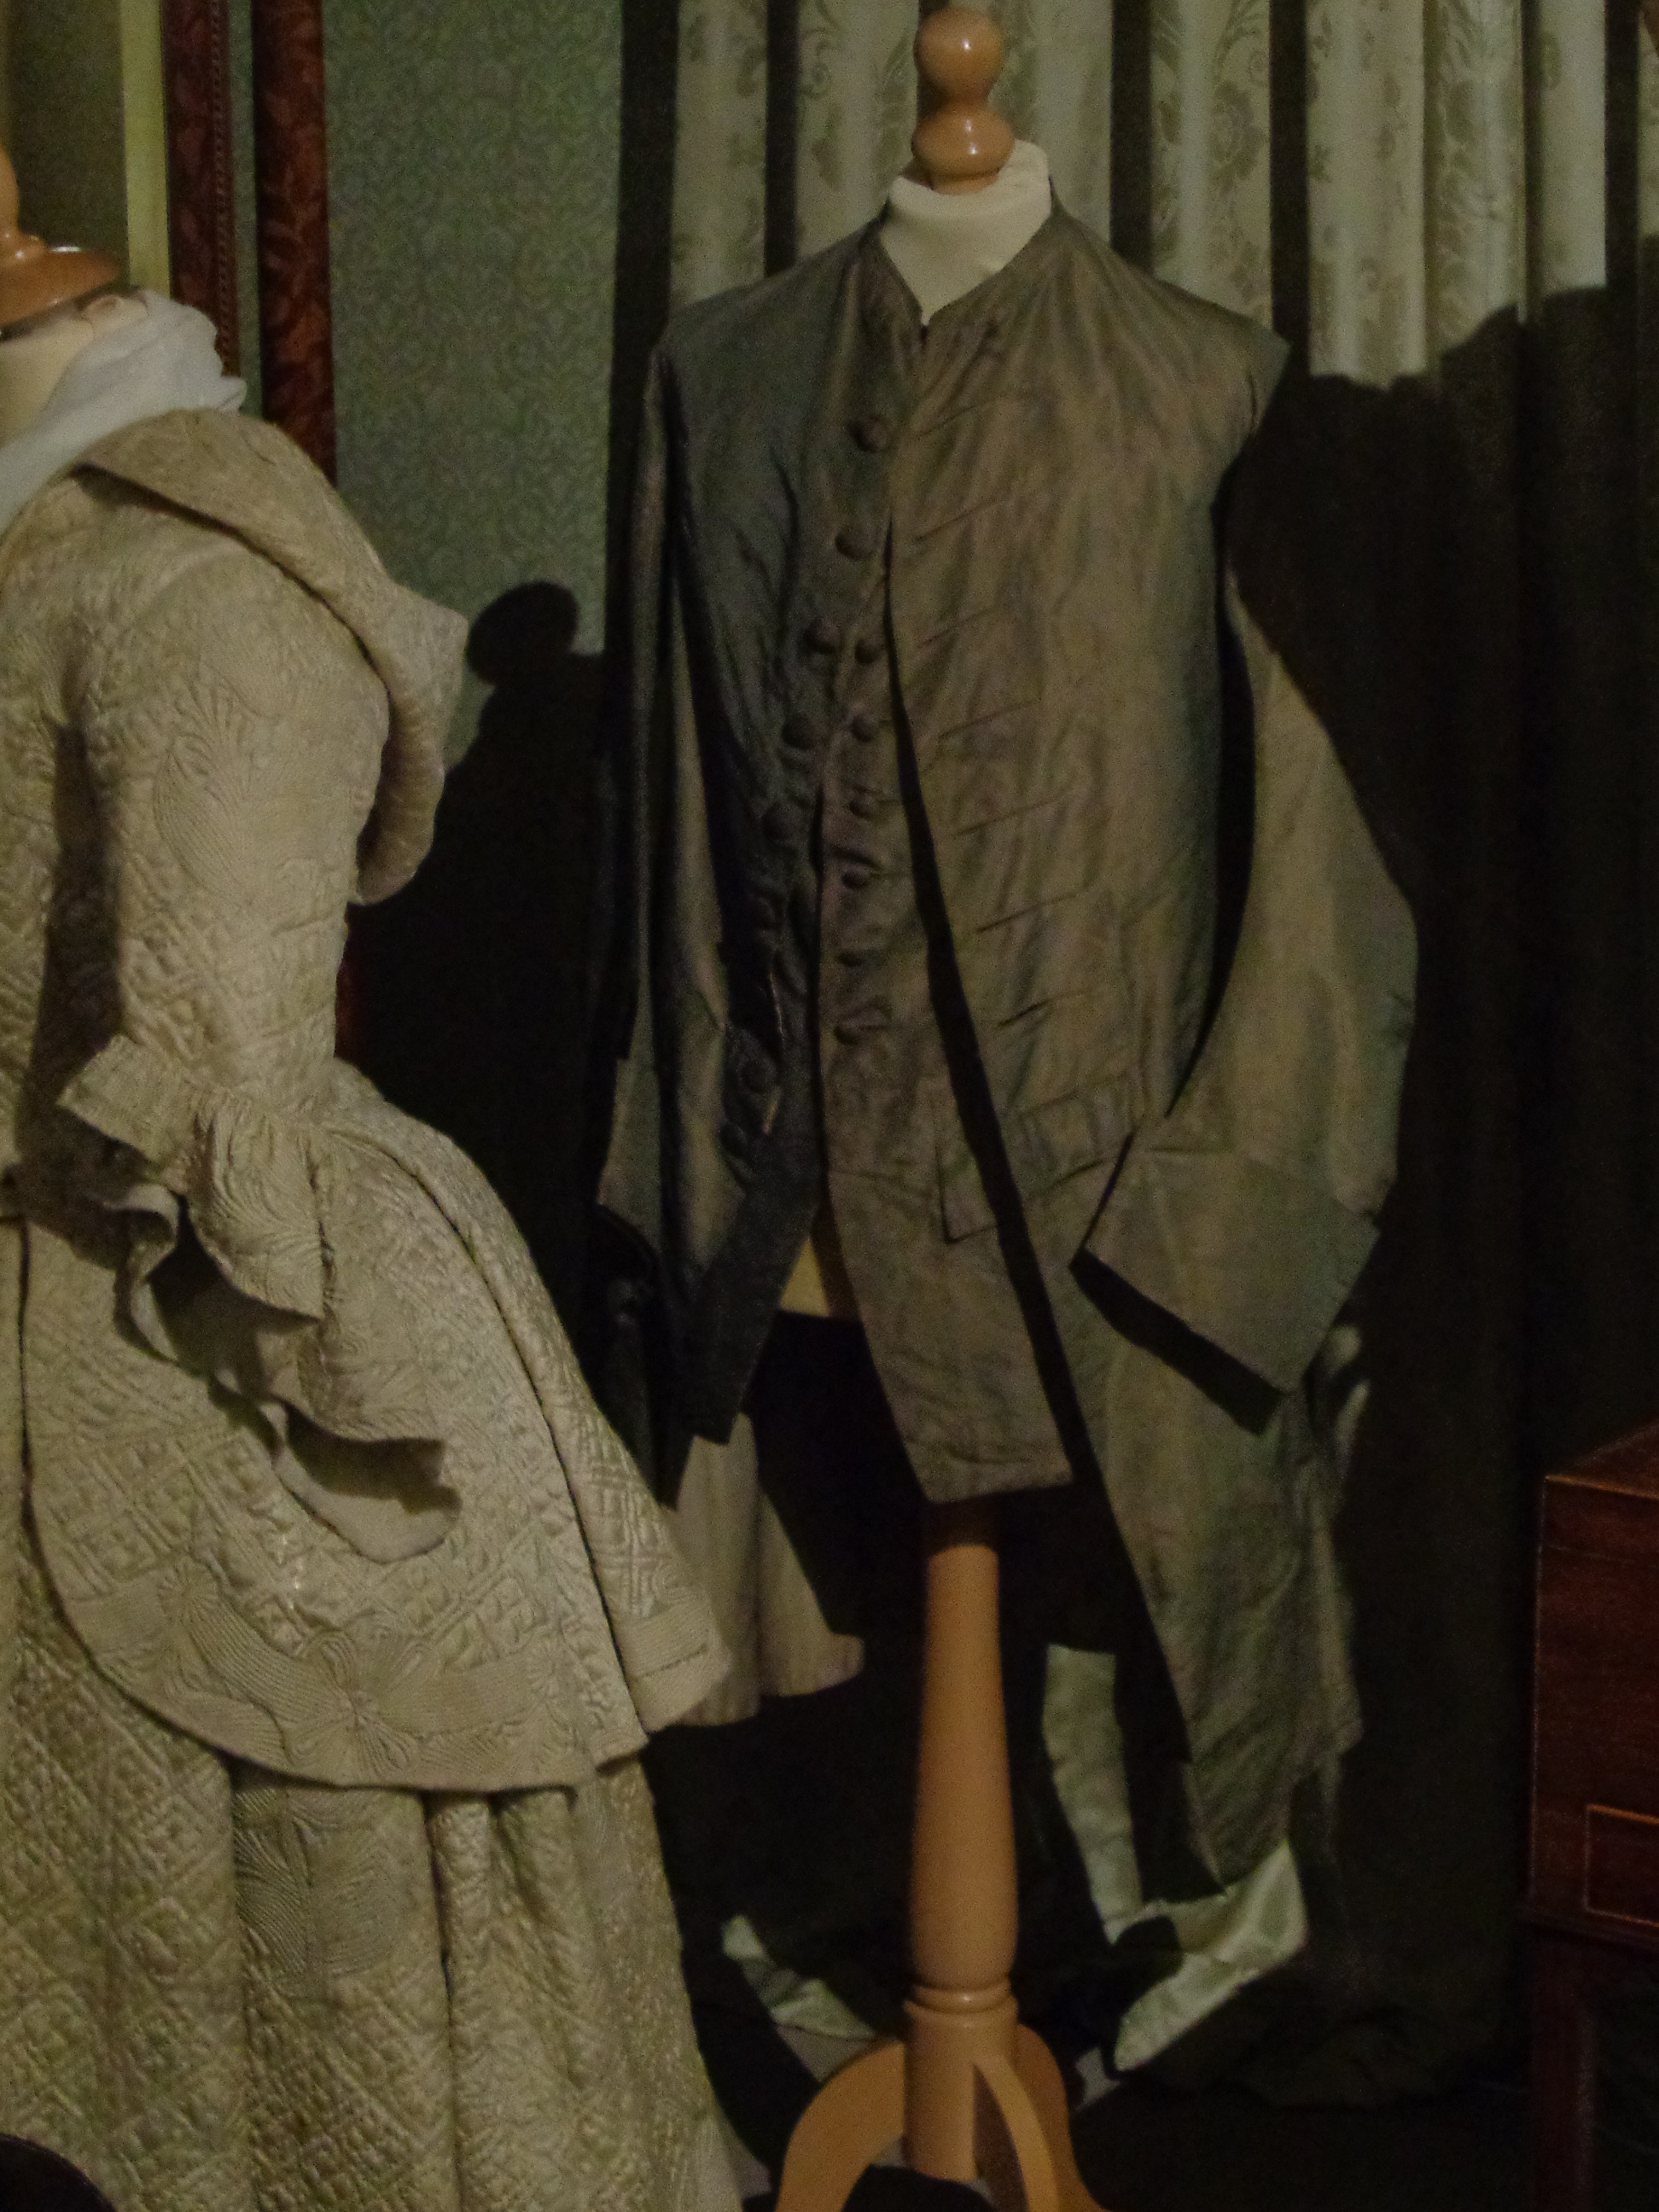 reproduction costumes made to measure by HandBound historical costumes, studied and replicated period clothing - goergian and poldark, where can I get a poldark costume